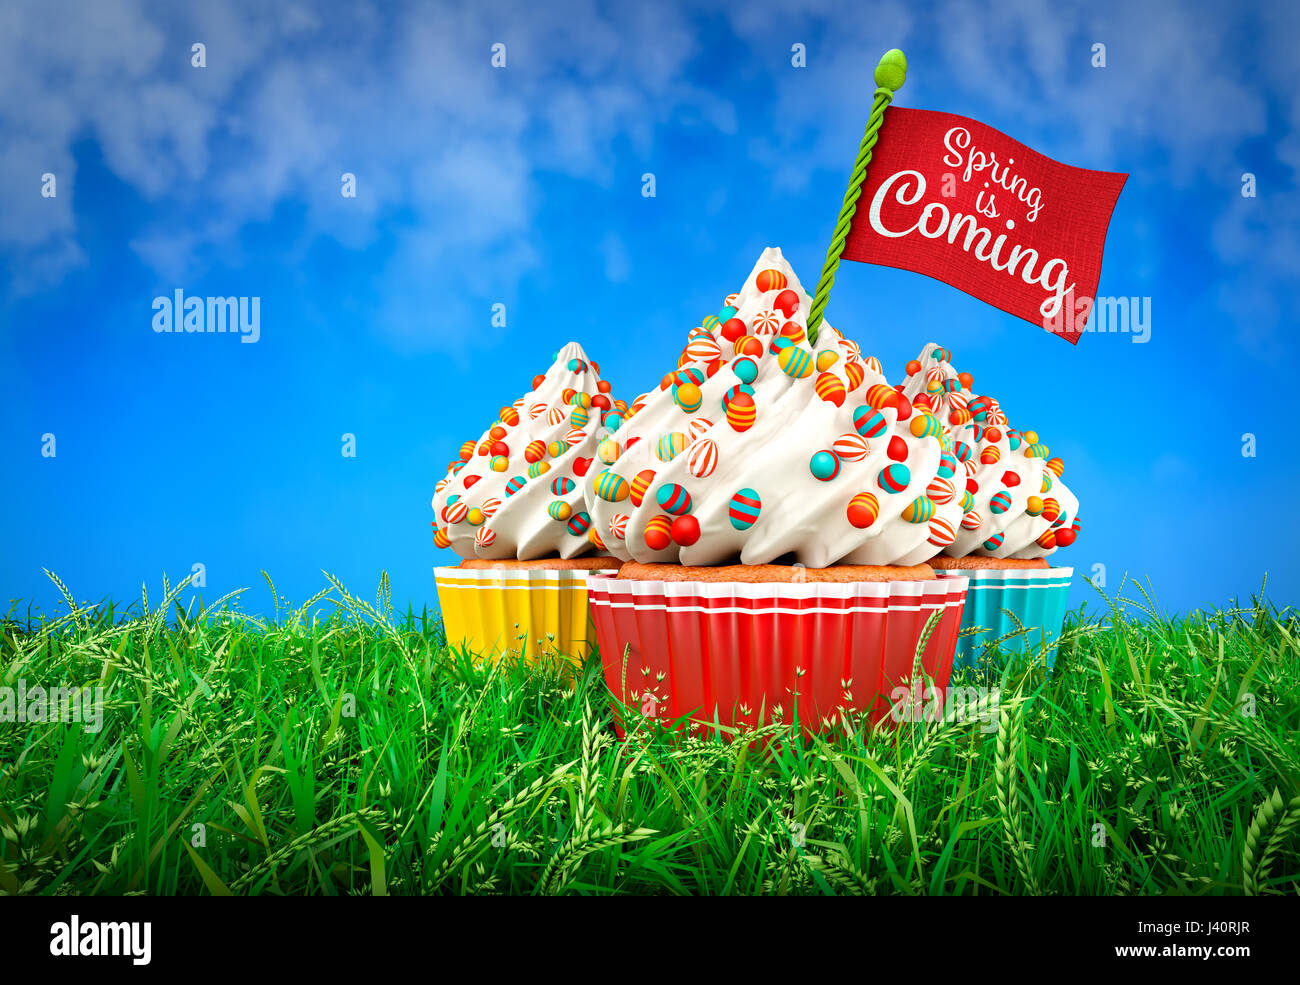 3D Rendering of Colorful Cupcakes in Grass, Easter Theme Stock Photo